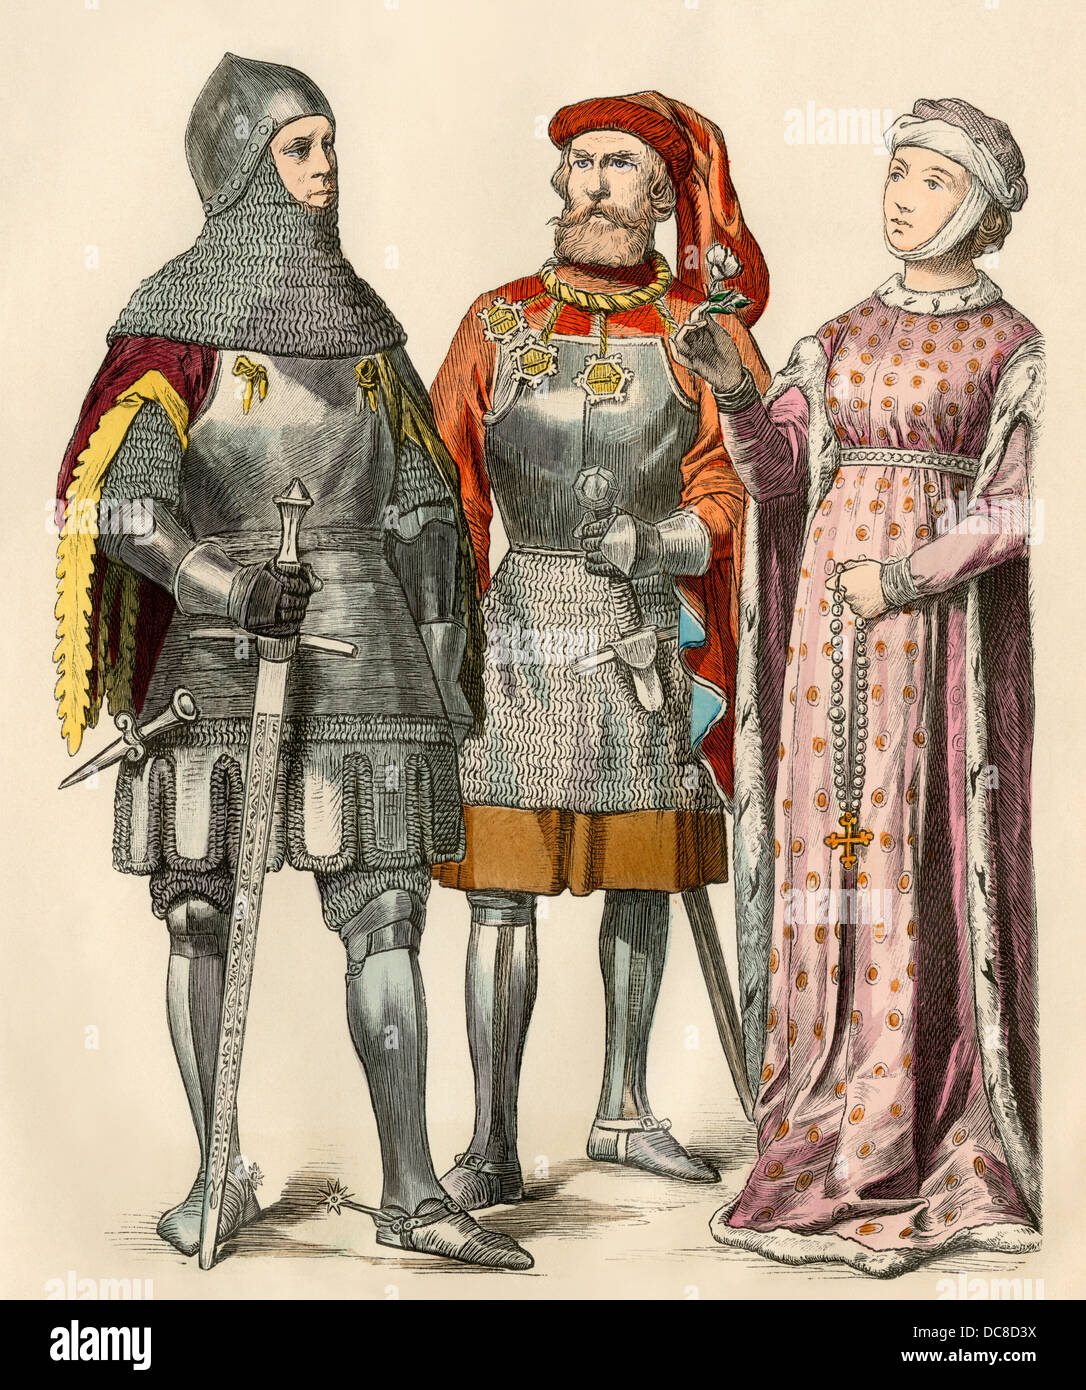 Knights and a lady of the early 1400s. Hand-colored print - Stock Image